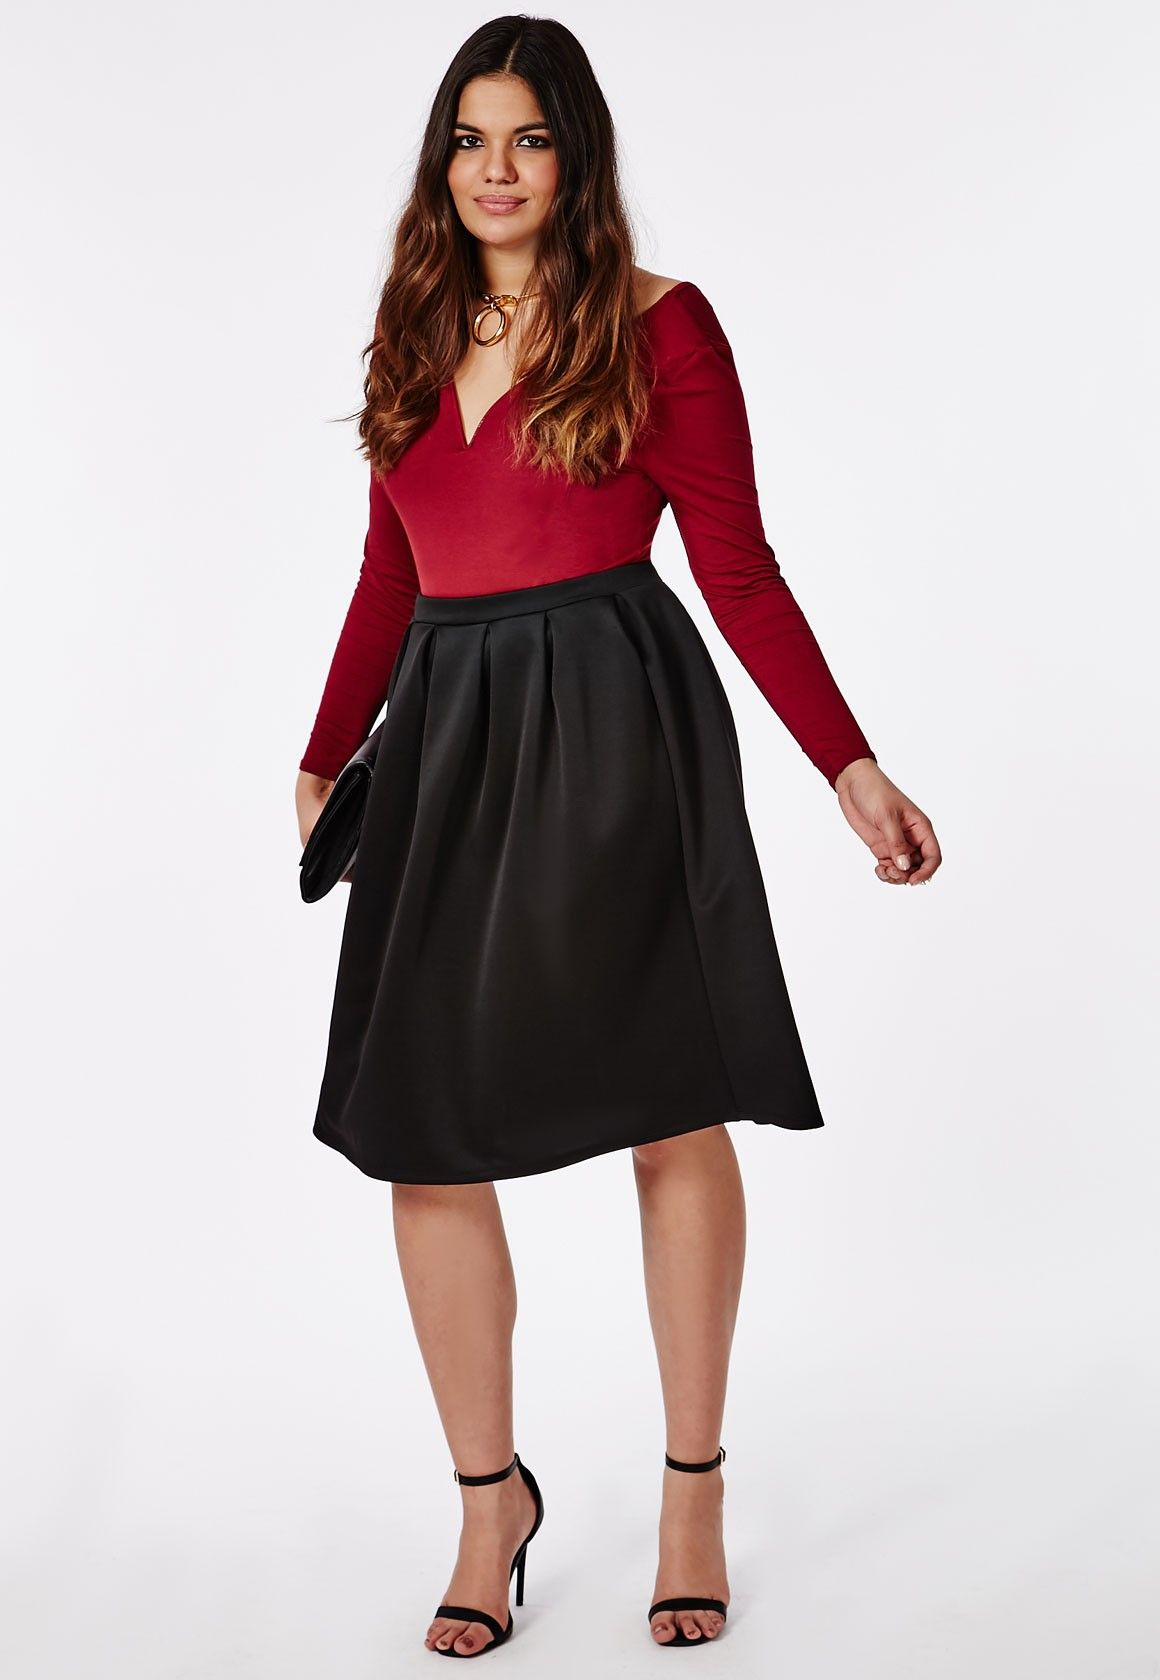 10 Plus Size Skater Skirts for Fall Fashion | Skater Dresses ...